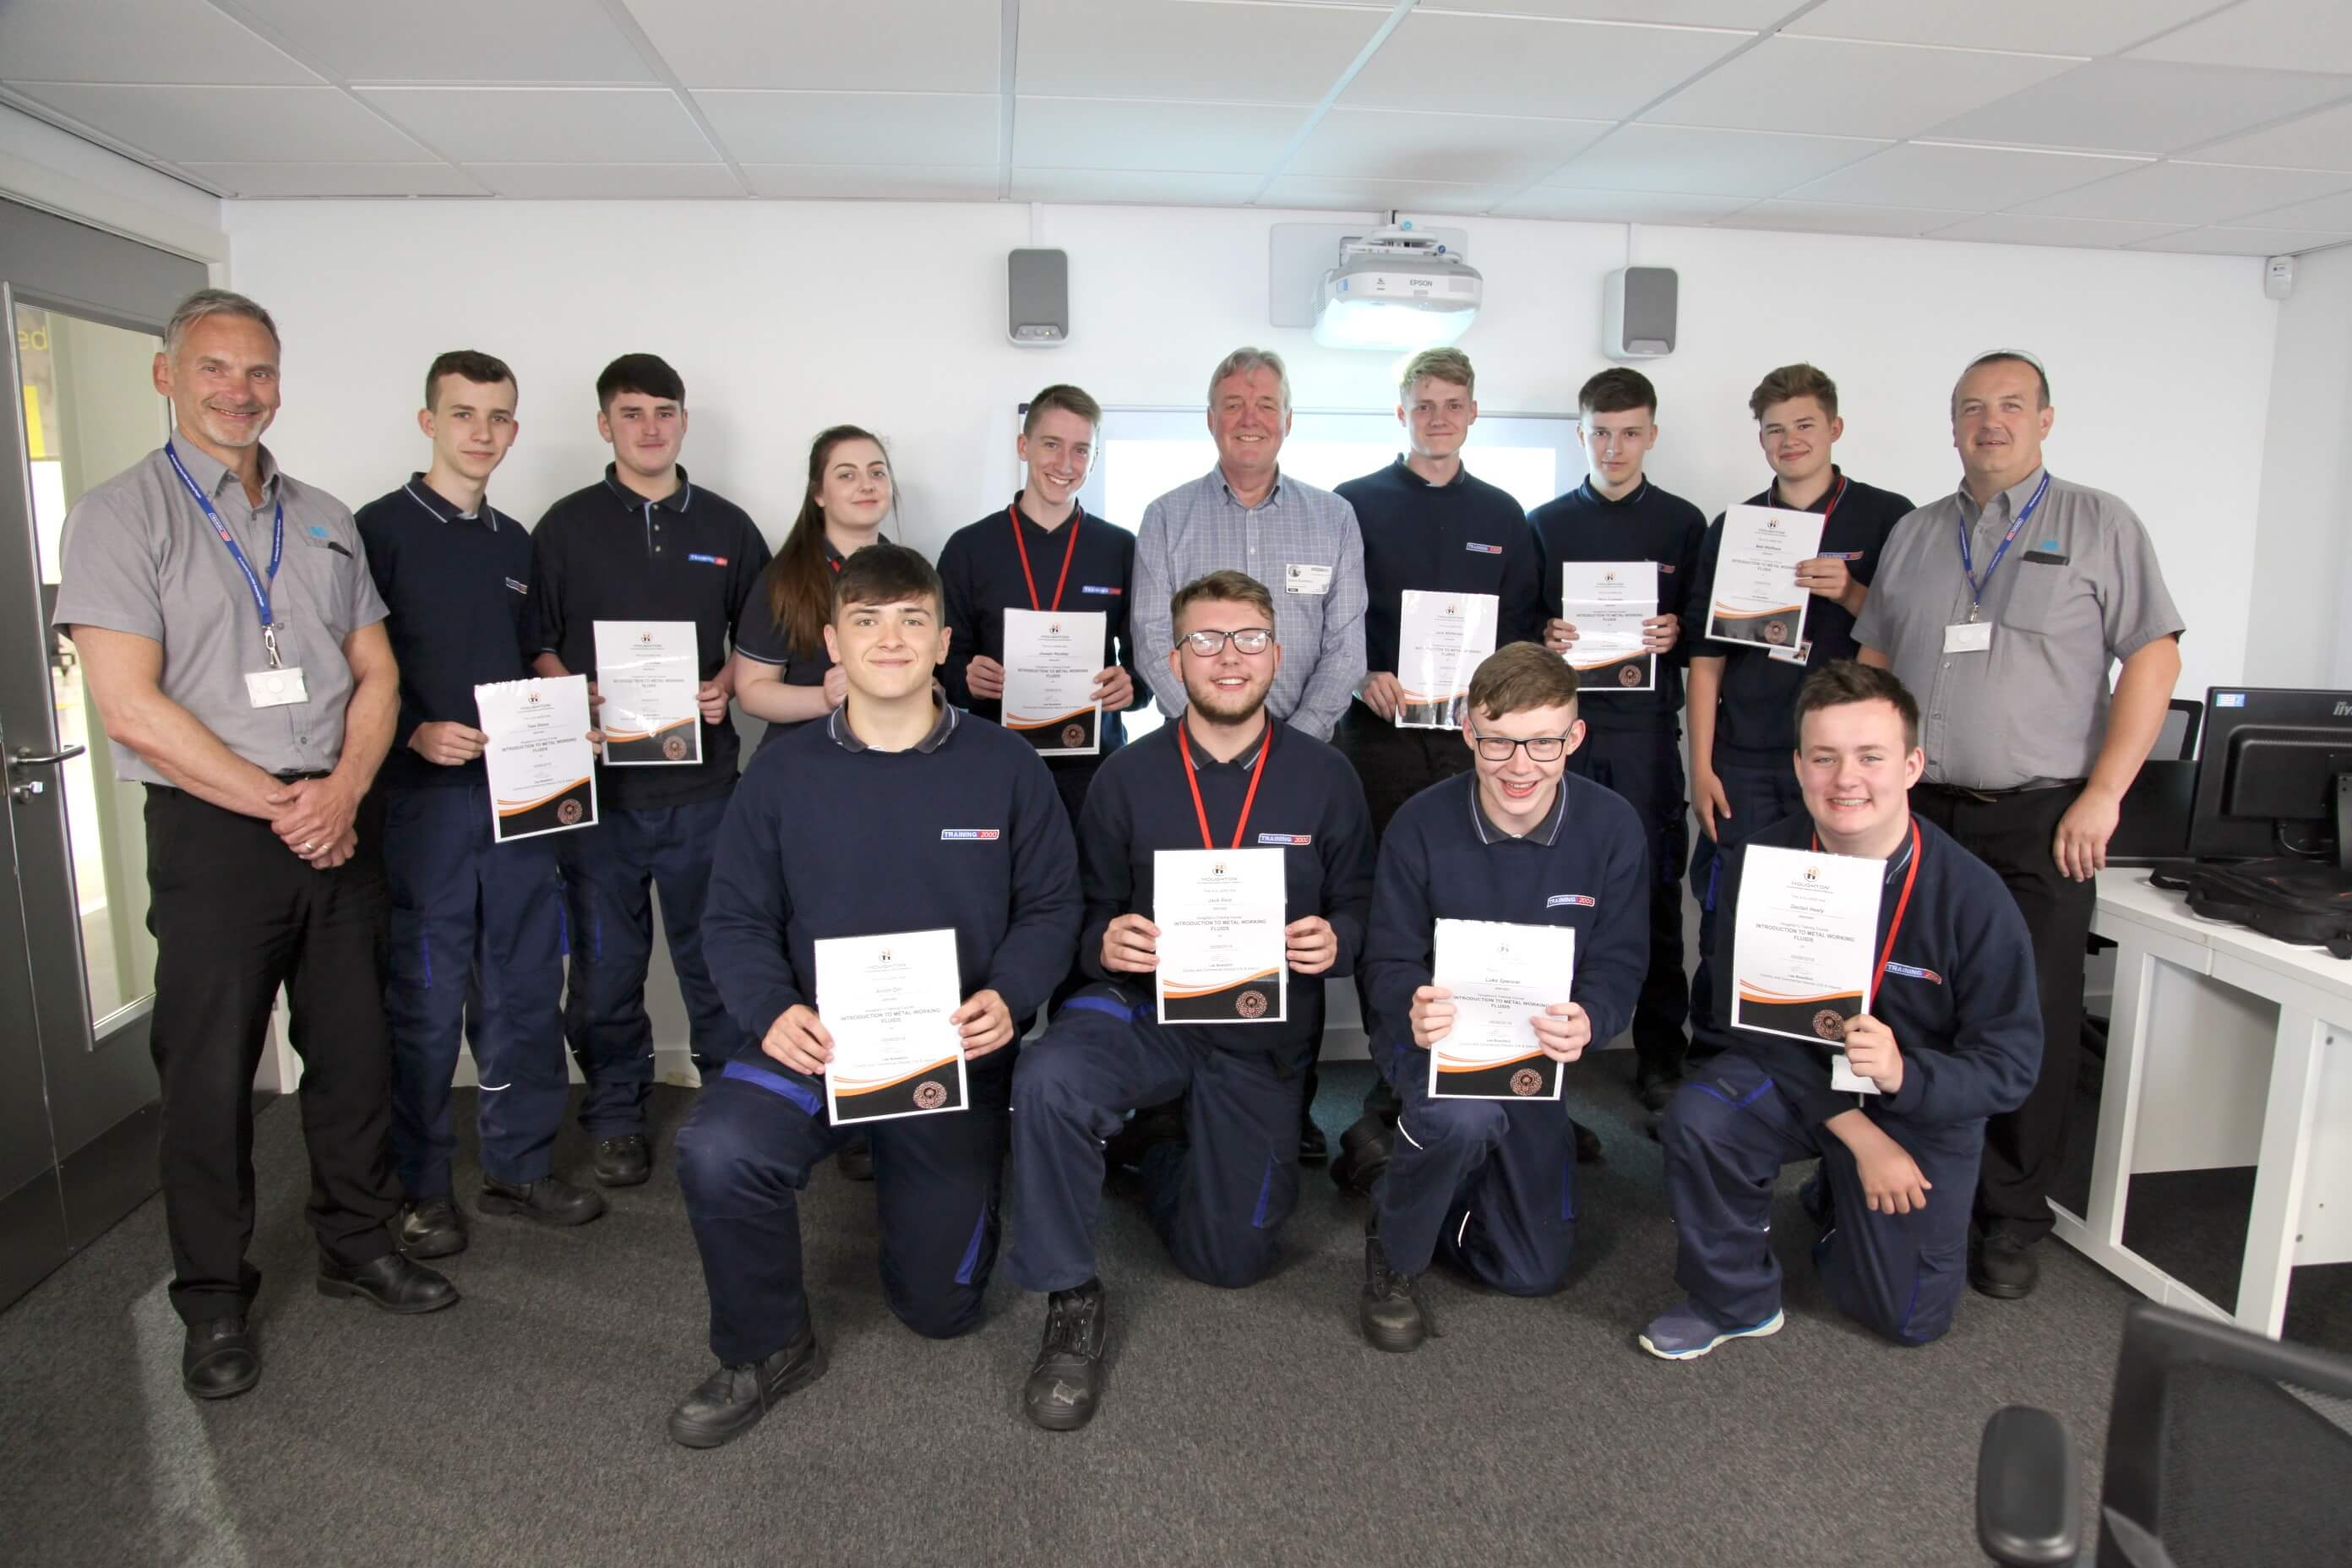 Steve Mayo with Training 2000 Engineering Apprentices